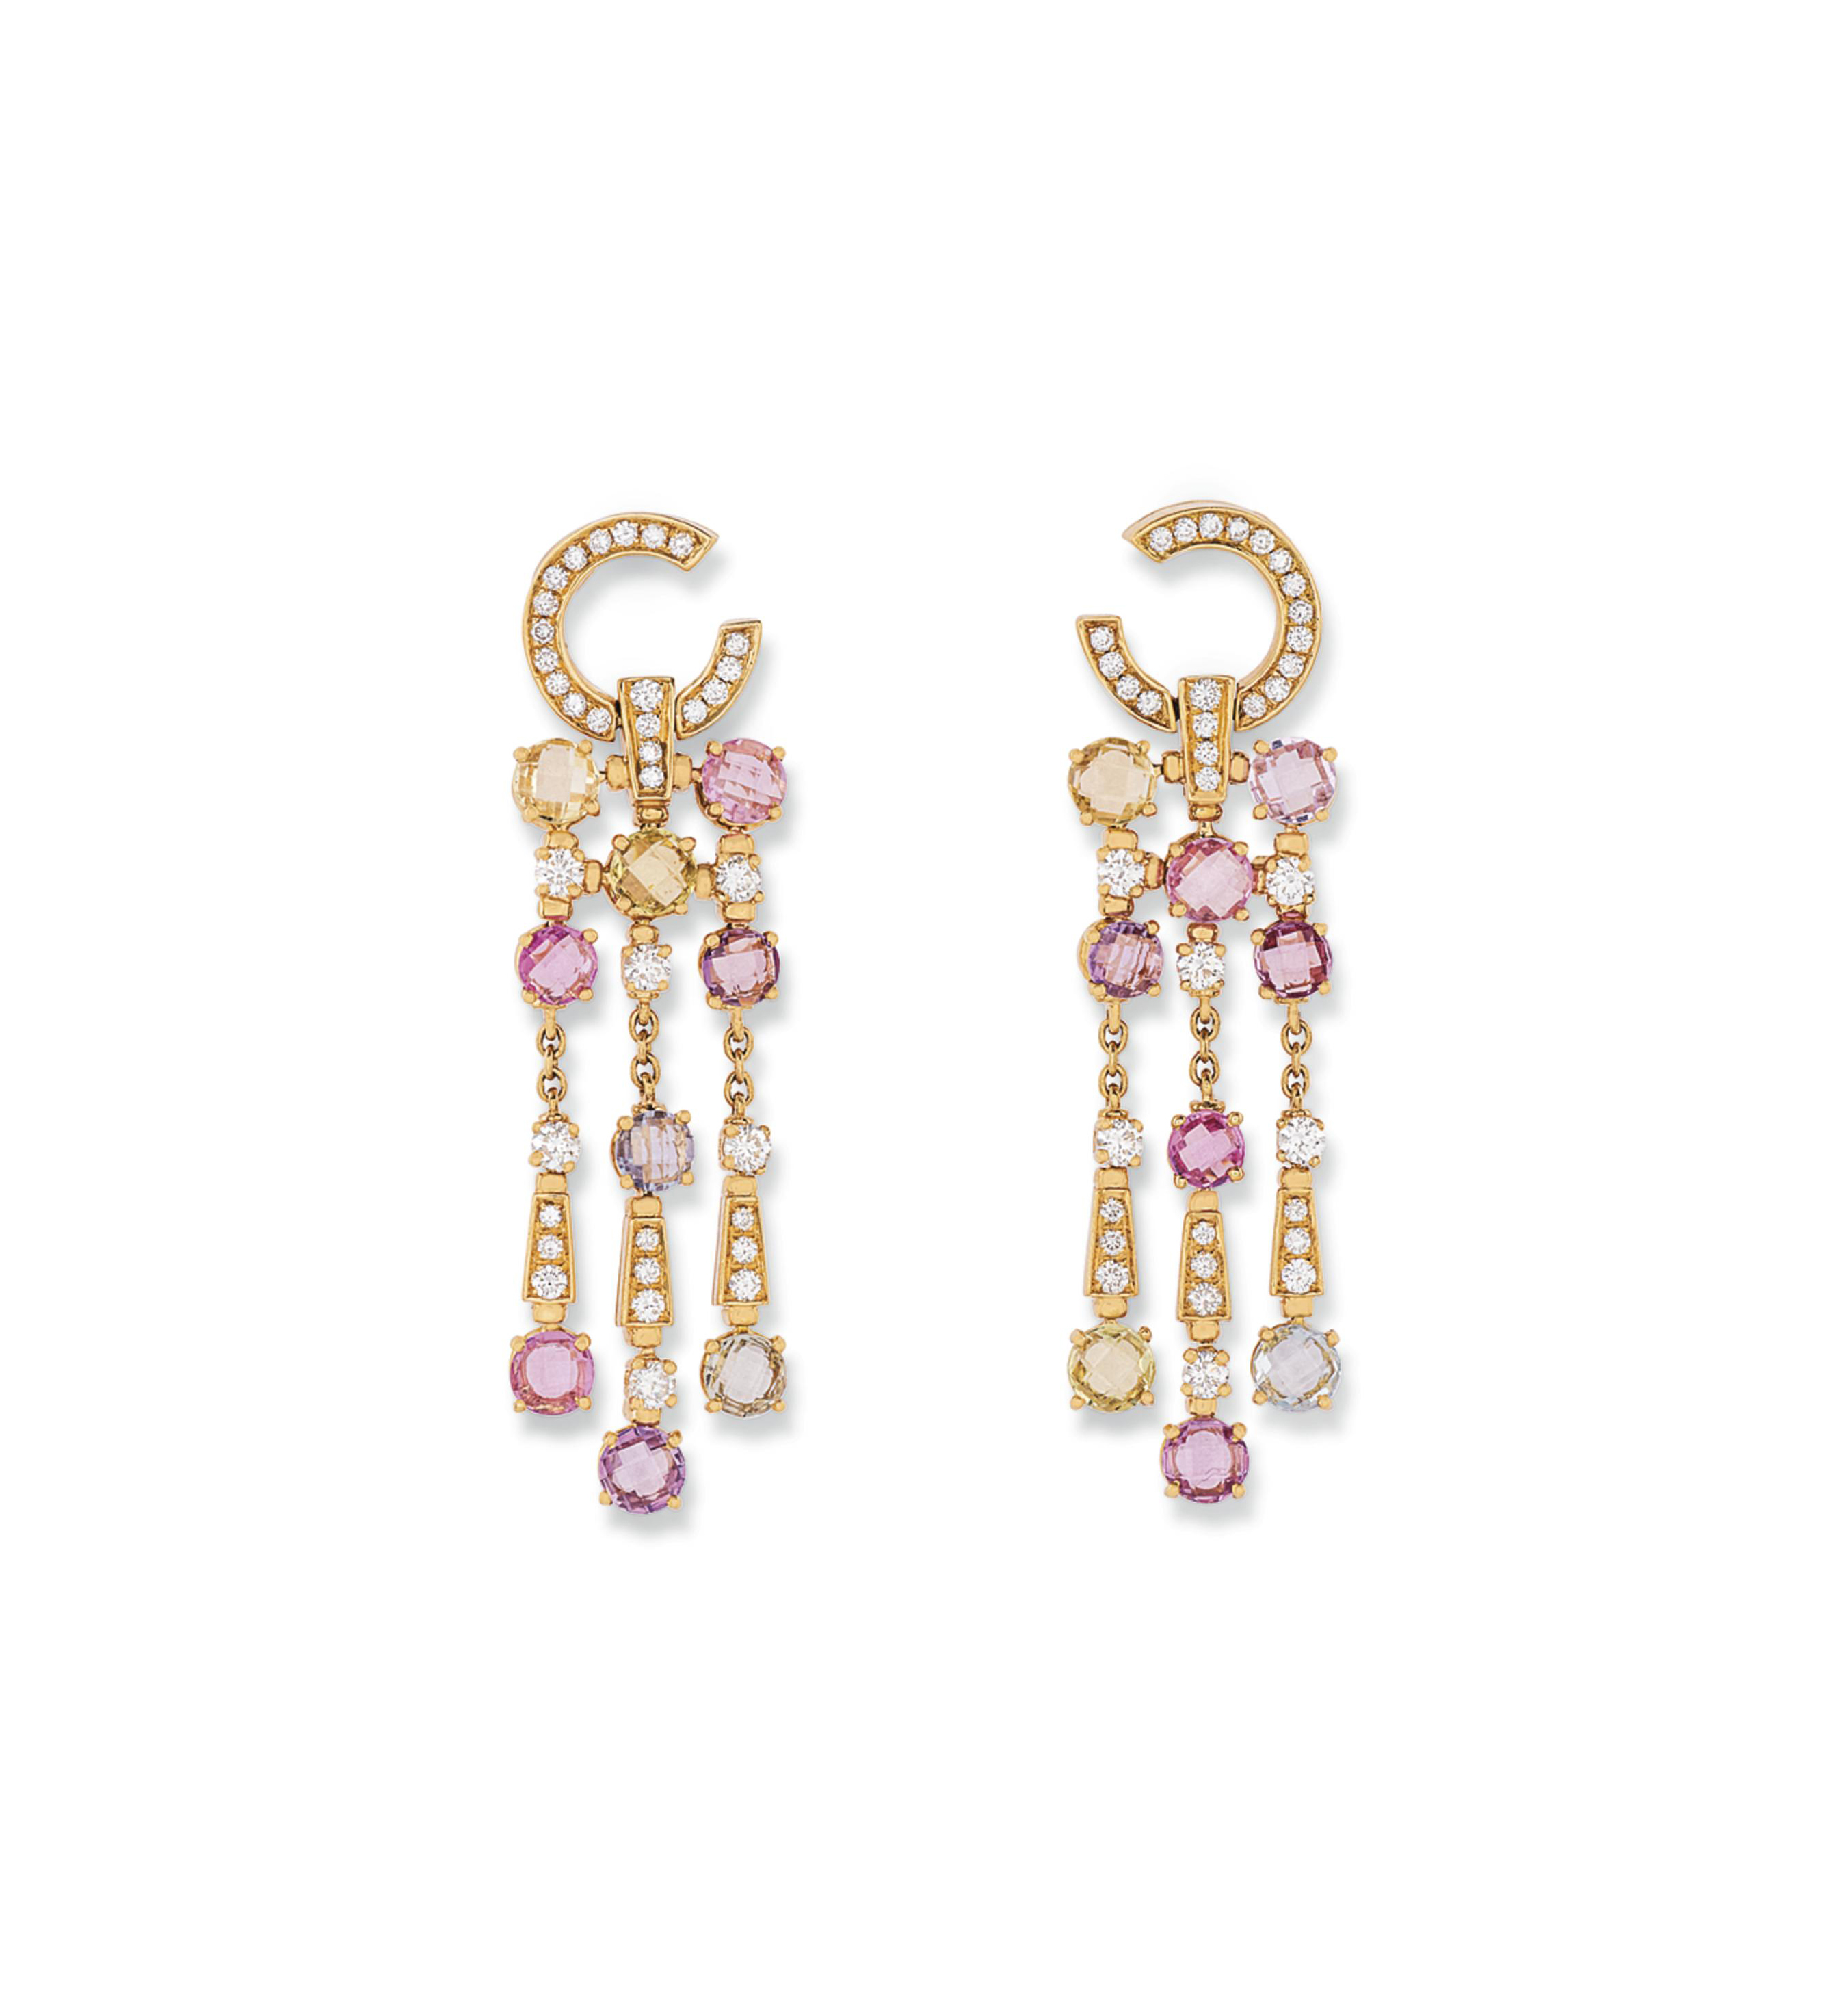 TWO PAIRS OF DIAMOND AND GEM-S